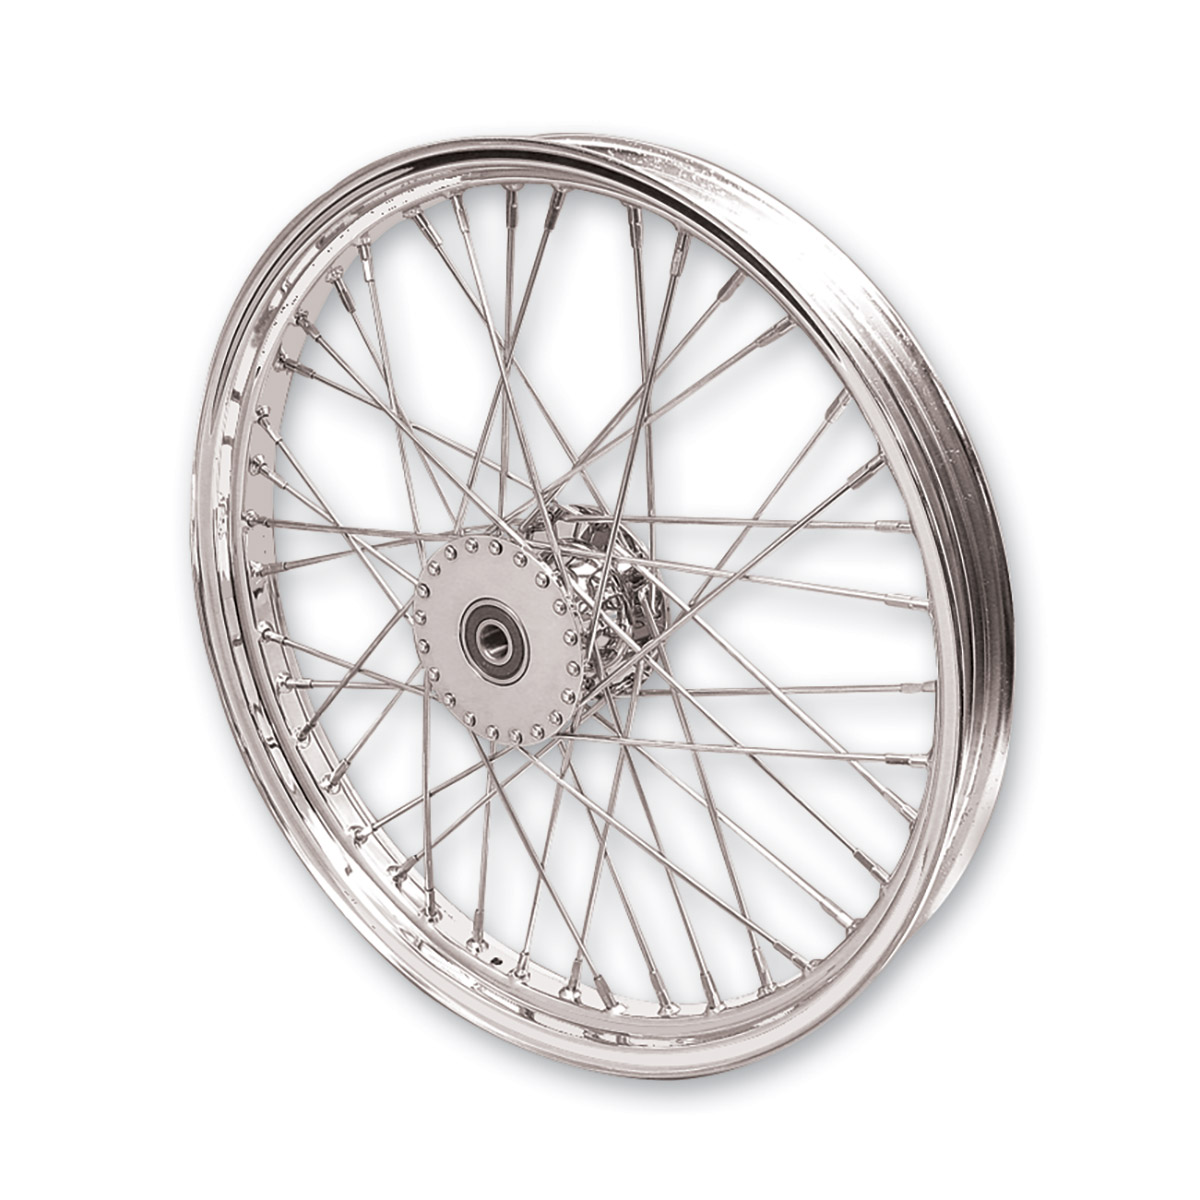 Chrome 21″ x 2.15″ Spool Wheel